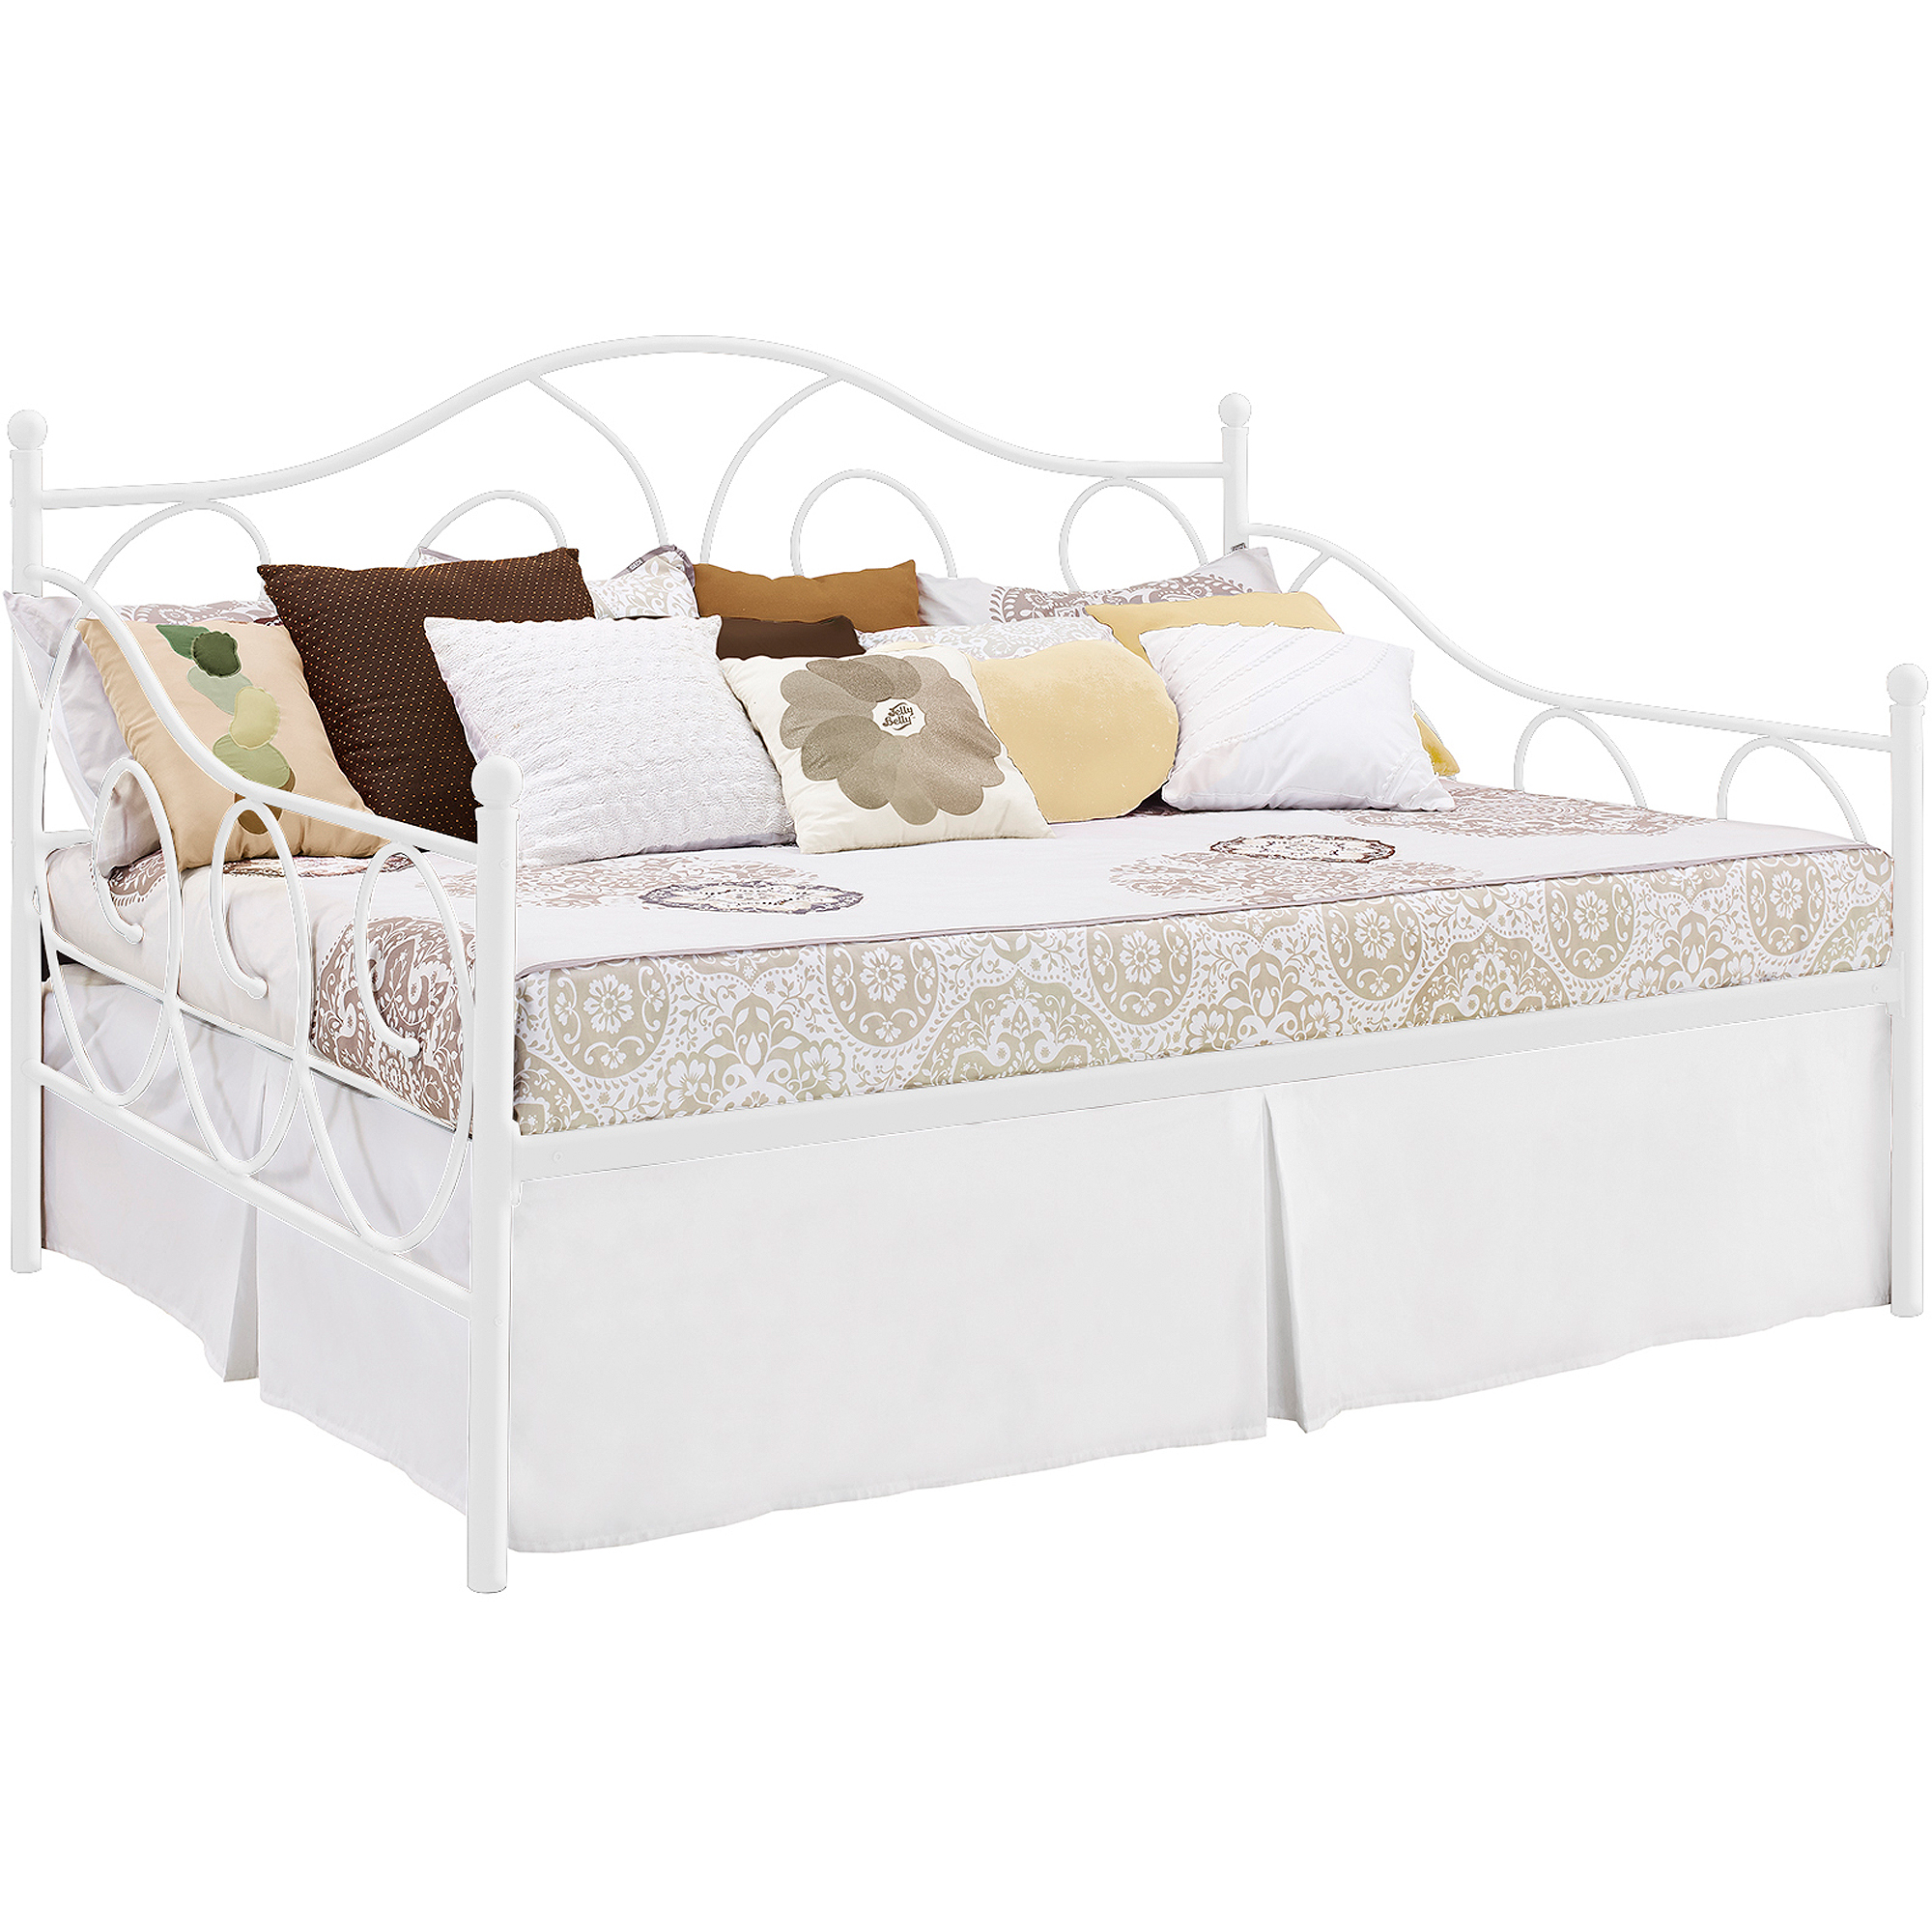 DHP Victoria Full Size Metal Daybed Frame, Multiple Colors - Walmart.com